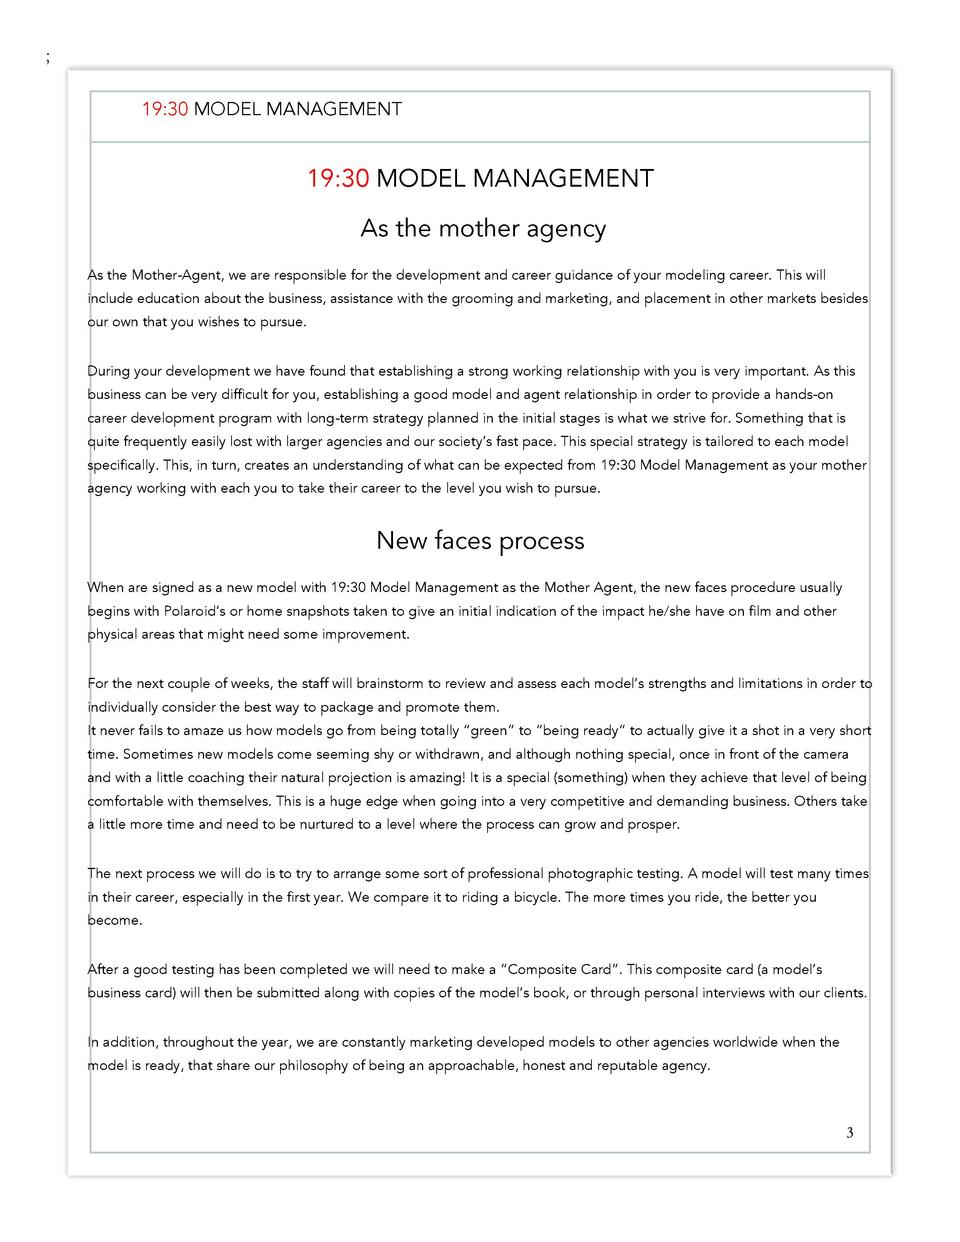 19 30 MODEL MANAGEMENT  19 30 MODEL MANAGEMENT As the mother agency As the Mother-Agent, we are responsible for the dev...